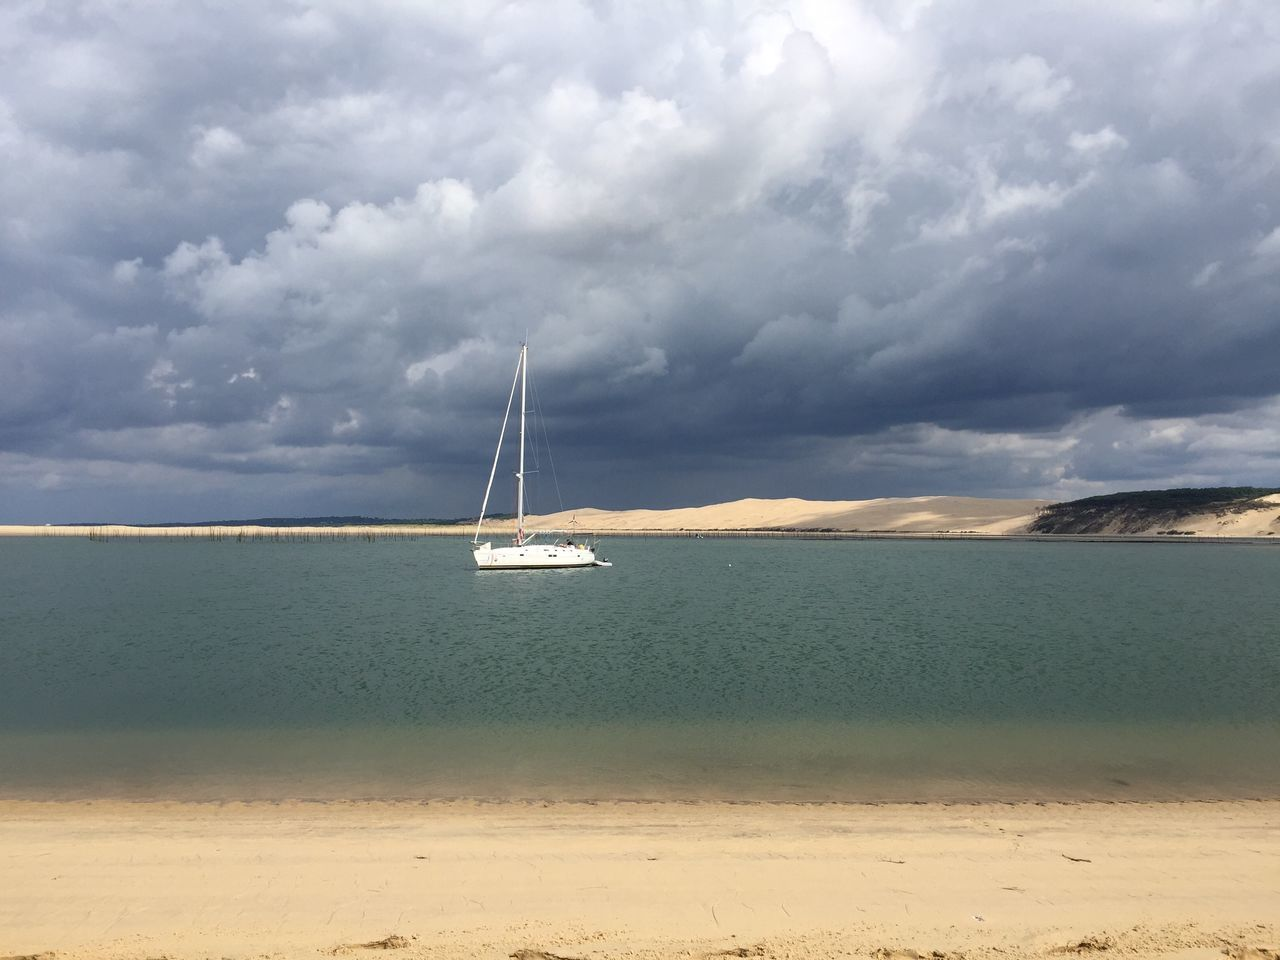 IPhoneography Mobile Photography Great Atmosphere Tourism Sea Life Ocean View Nature_collection Boat Gironde Clouds Beach Life Bassin D Arcachon Sand Dunes Sand Boat Trip Boatlife Boatinglife Watching Boats